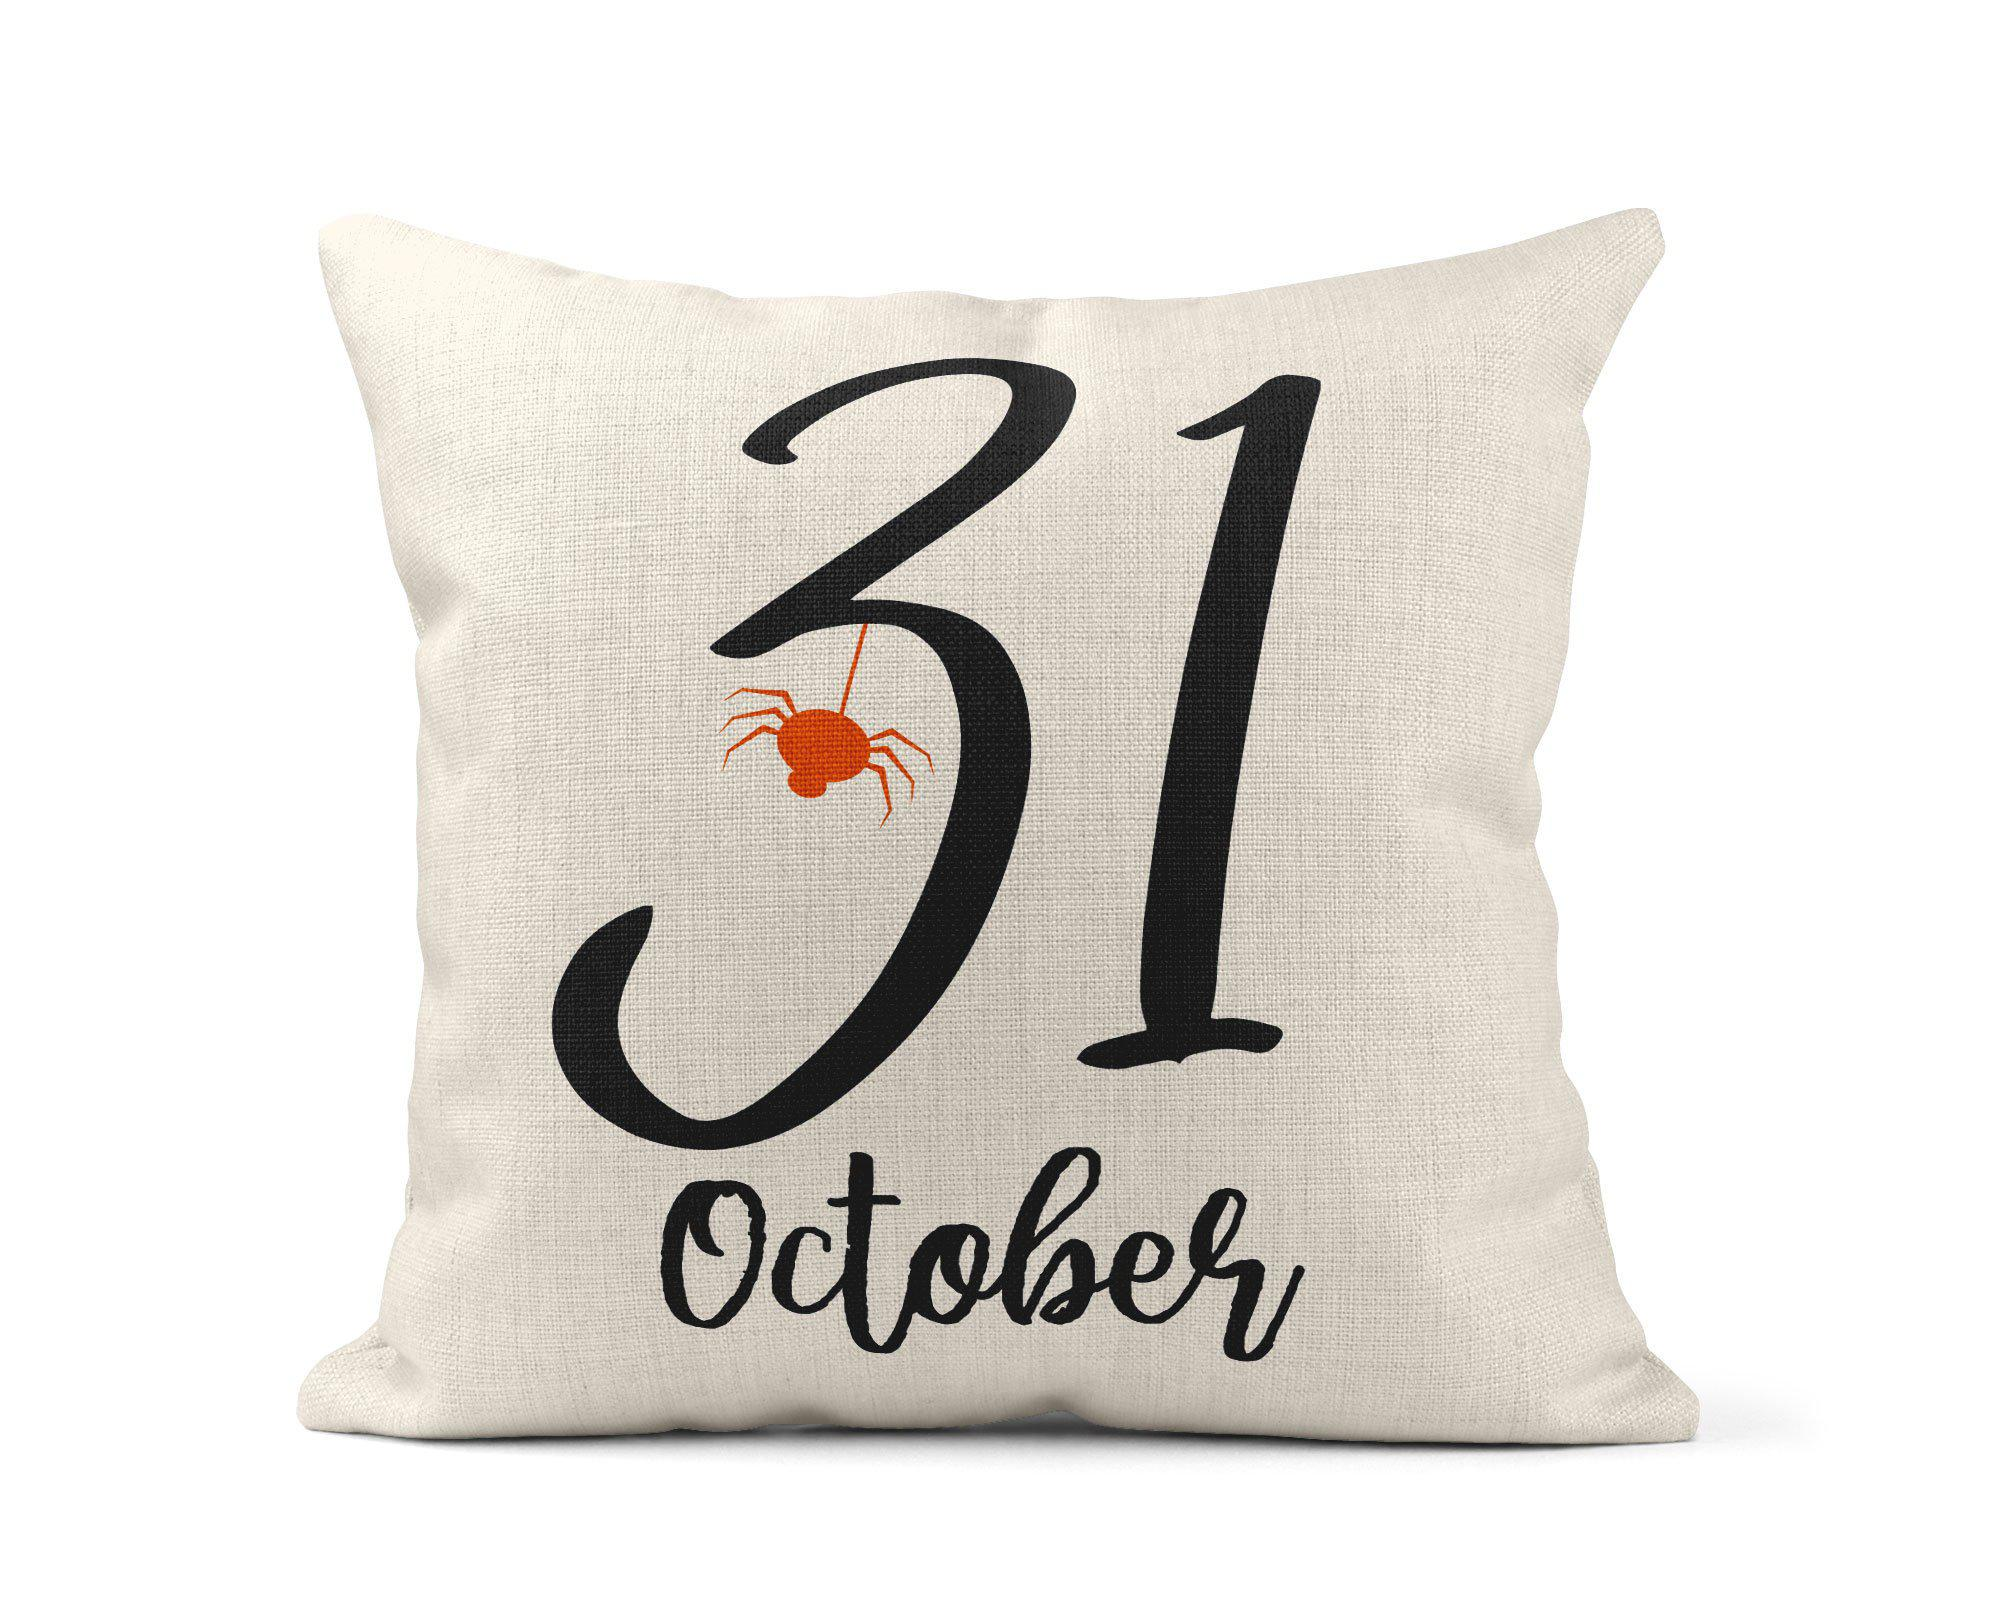 October 31 Throw Pillow-Home Decor-Maddie & Co.